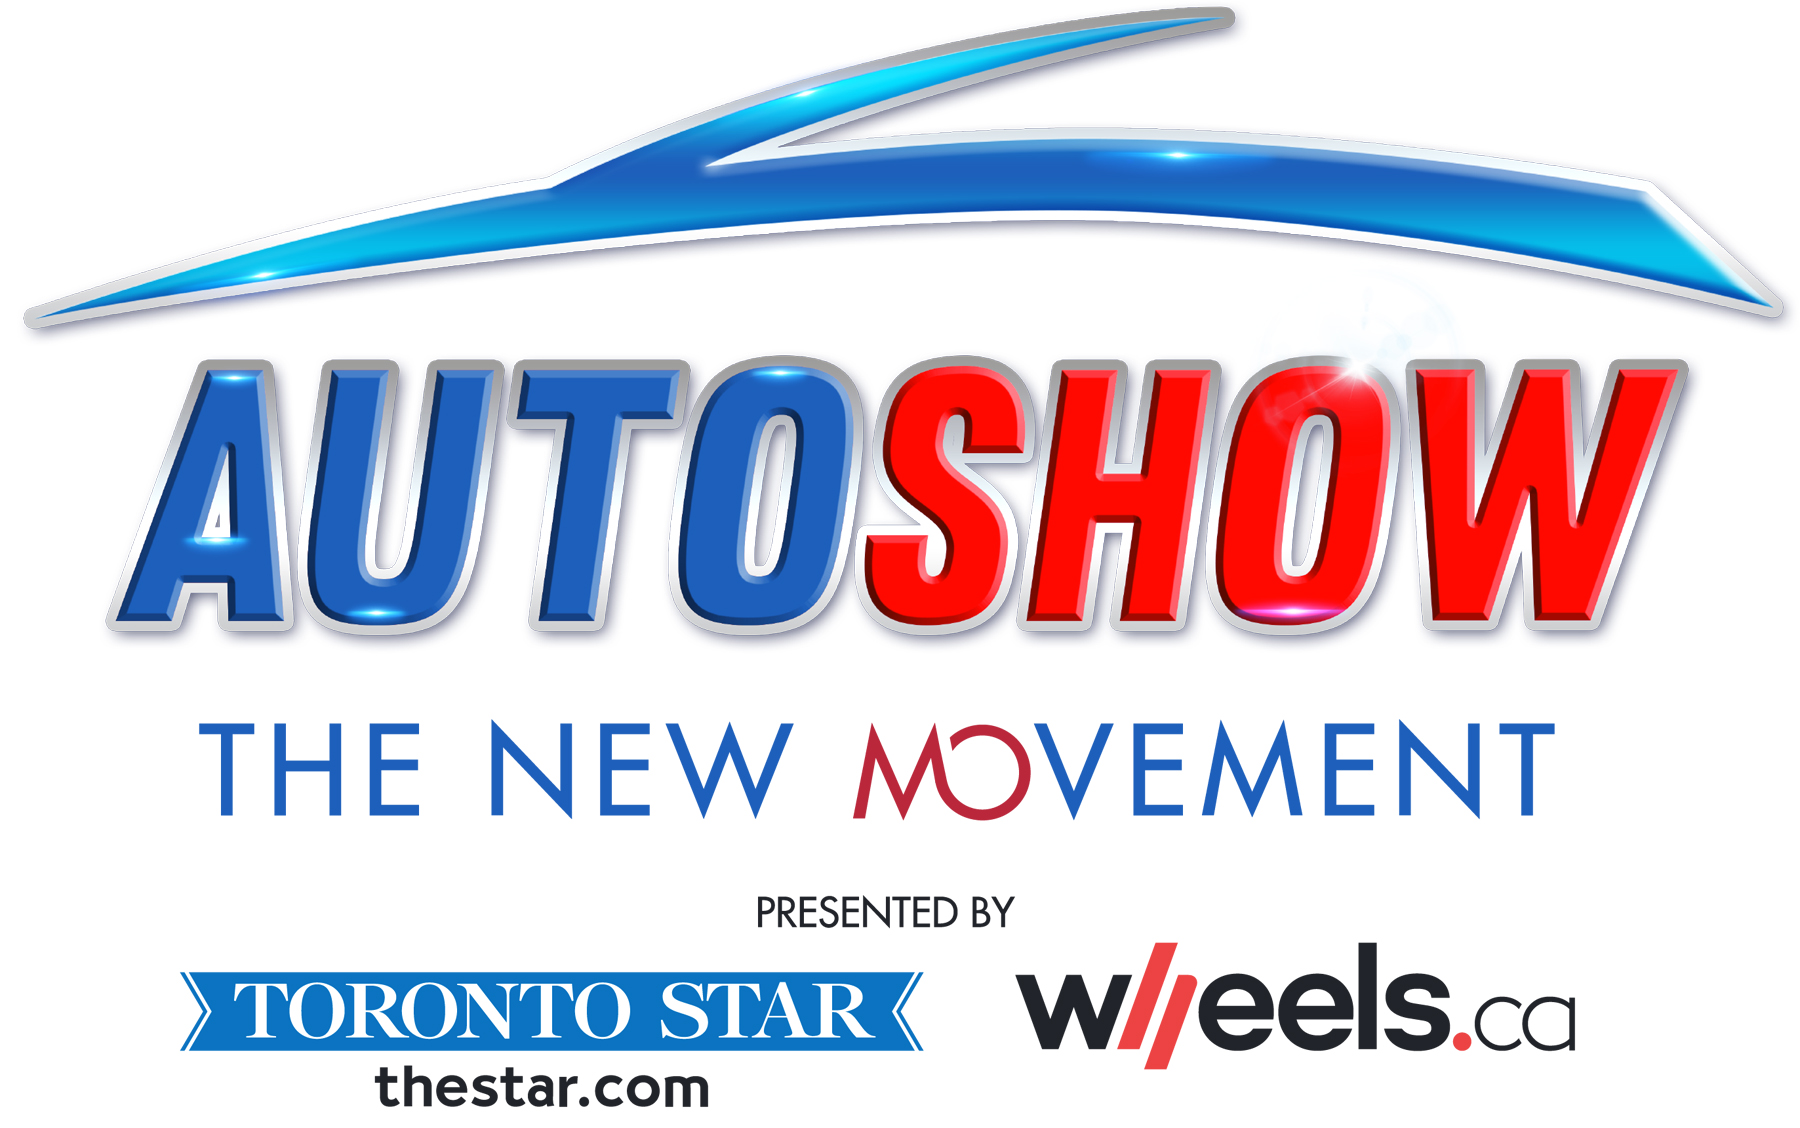 The Canadian International AutoShow will be held at the Metro Toronto Convention Centre between February 16th and 25th. Please visit autoshow.ca for more information.